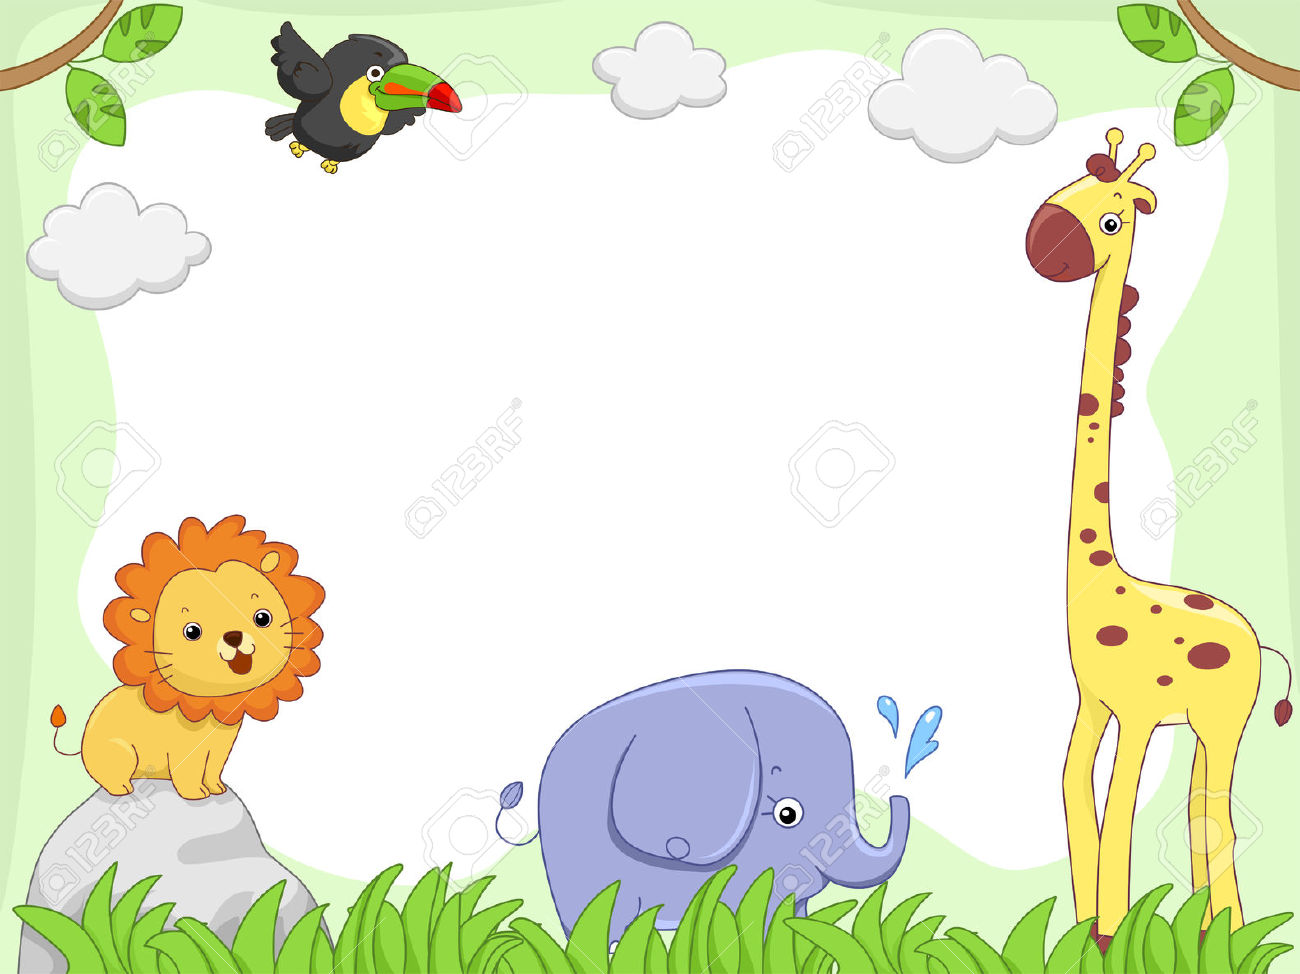 Baby forest animals clipart - photo#28